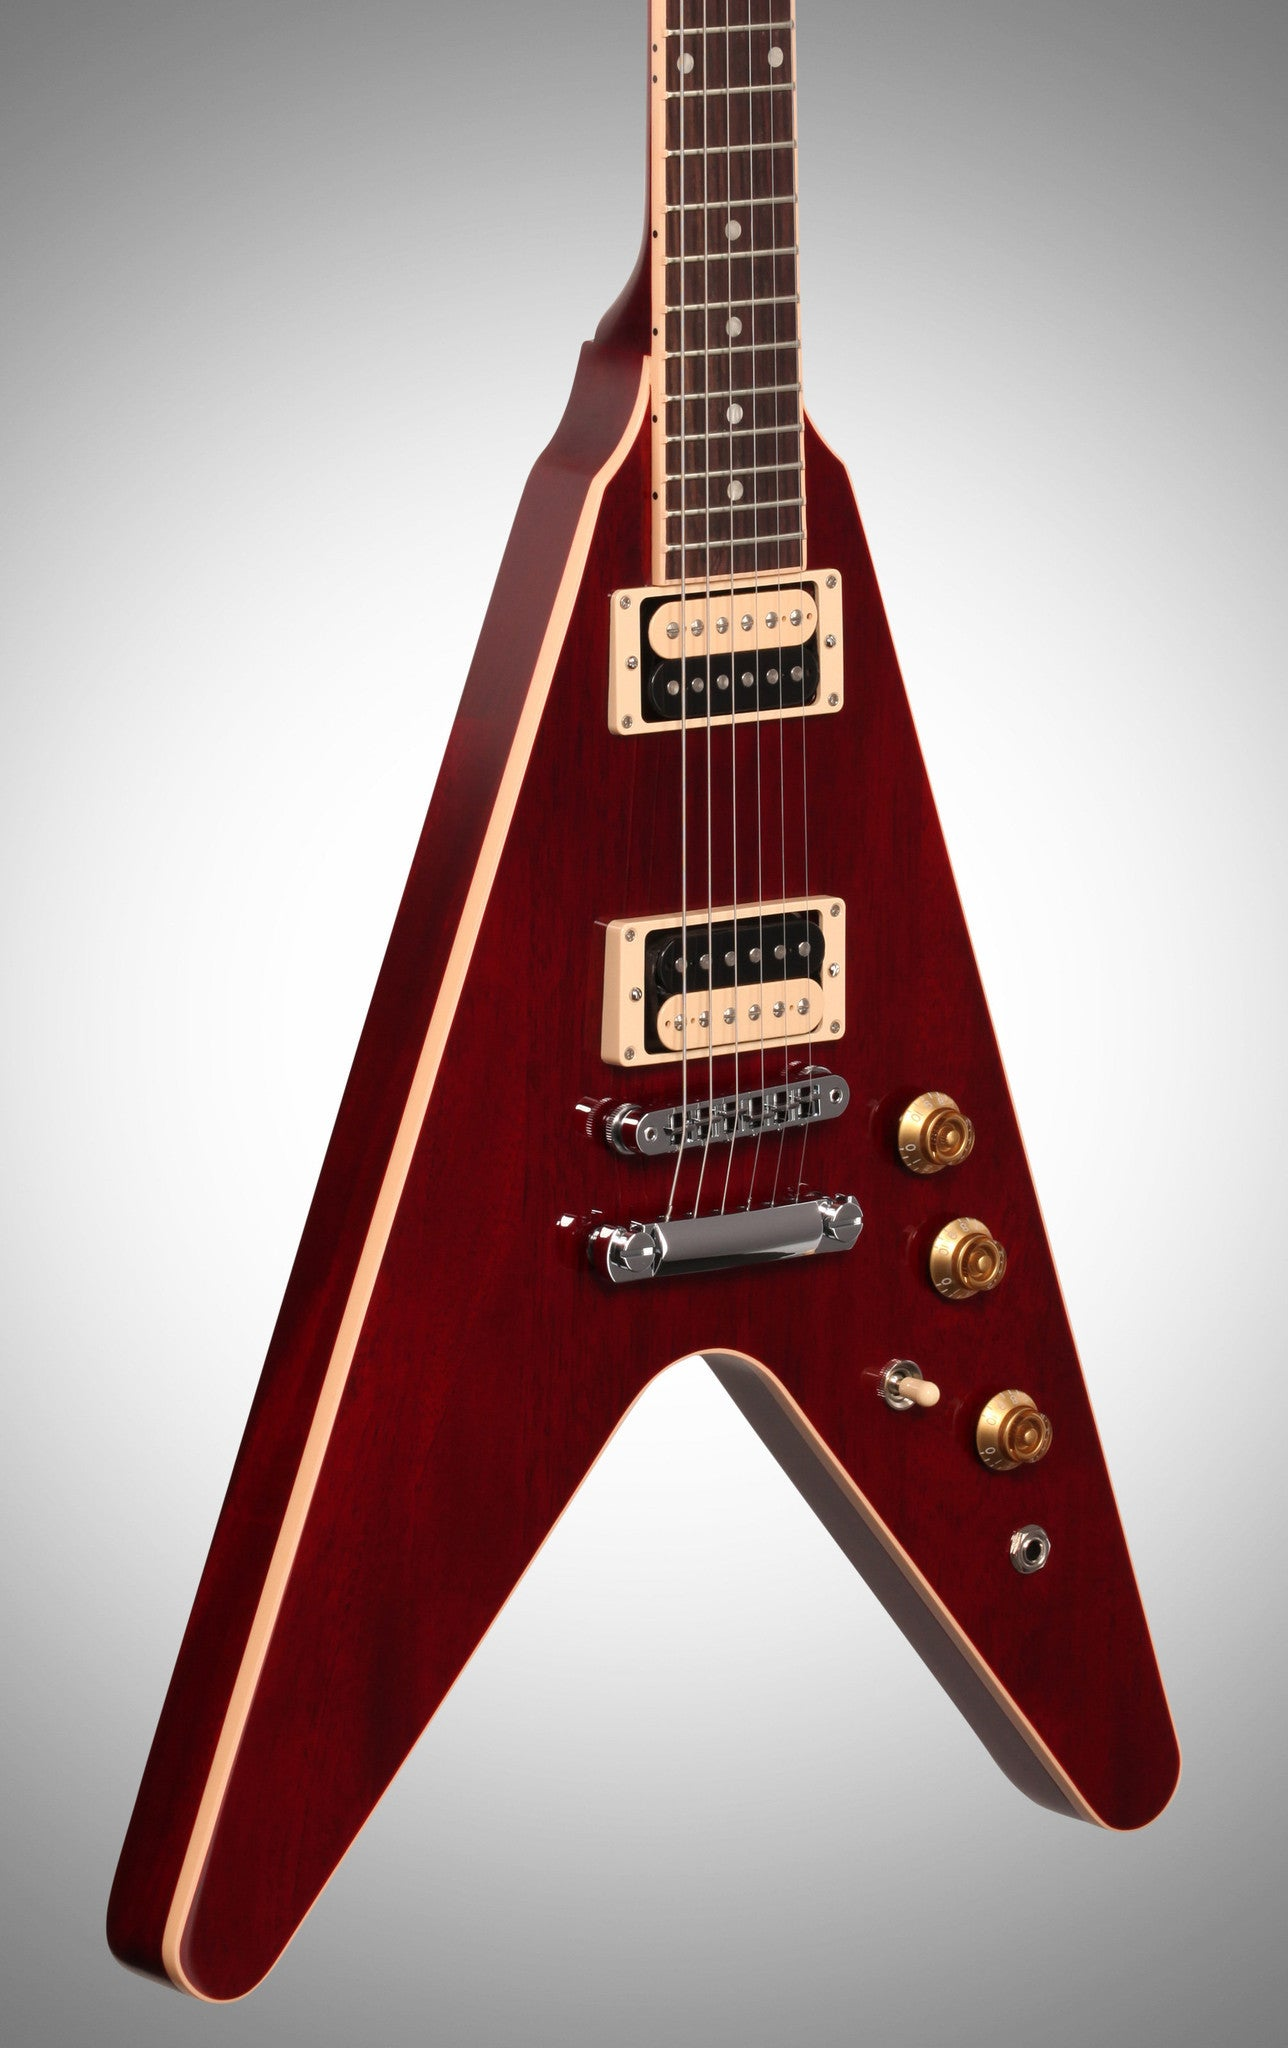 Gibson 2016 Flying V Pro T Electric Guitar (with Gig Bag), Wine Red - HIENDGUITAR   Gibson GUITAR